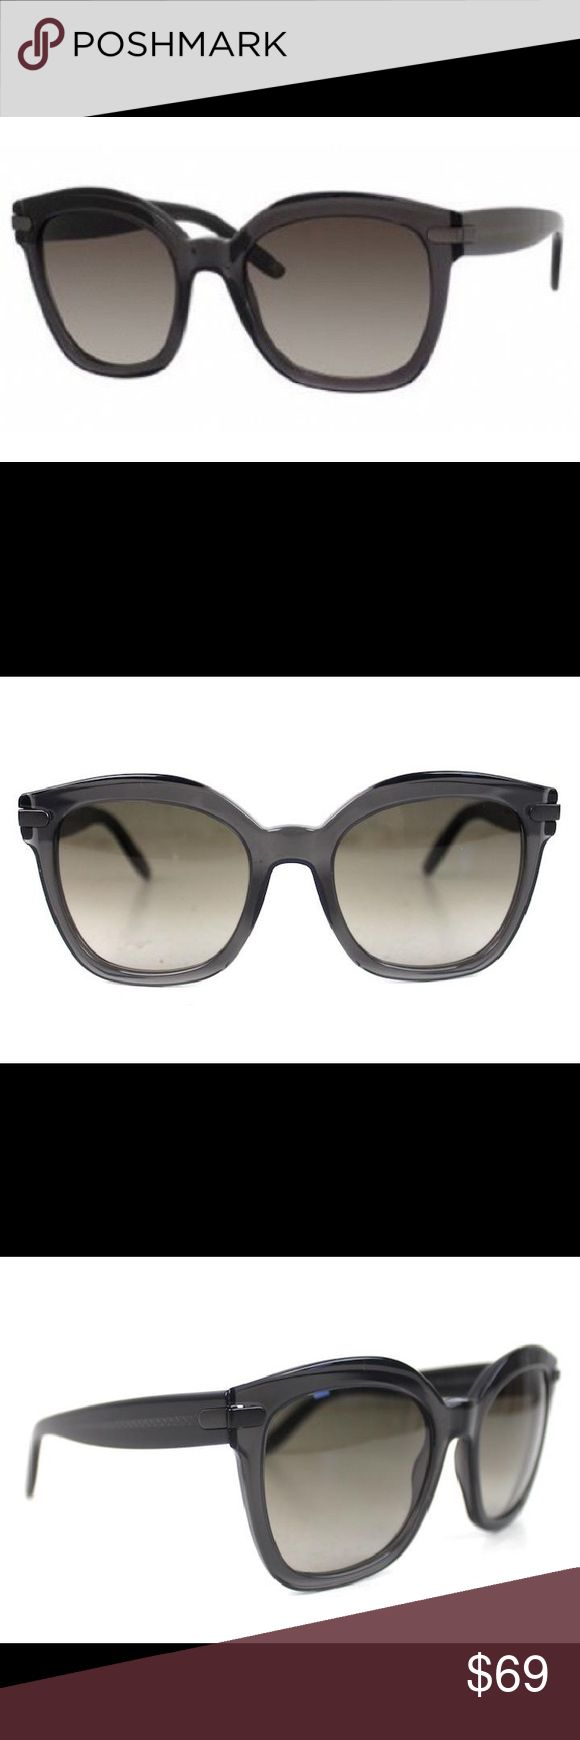 Bottega Veneta Oversize Women's Sunglasses Like new pair of Bottega Veneta oversize sunglasses! Frame is a gorgeous dark grey that has a hint of transparency when in the light. Style BV218/S. A timeless pair of frames that will be a staple in your wardrobe! Does not include case. Bottega Veneta Accessories Sunglasses